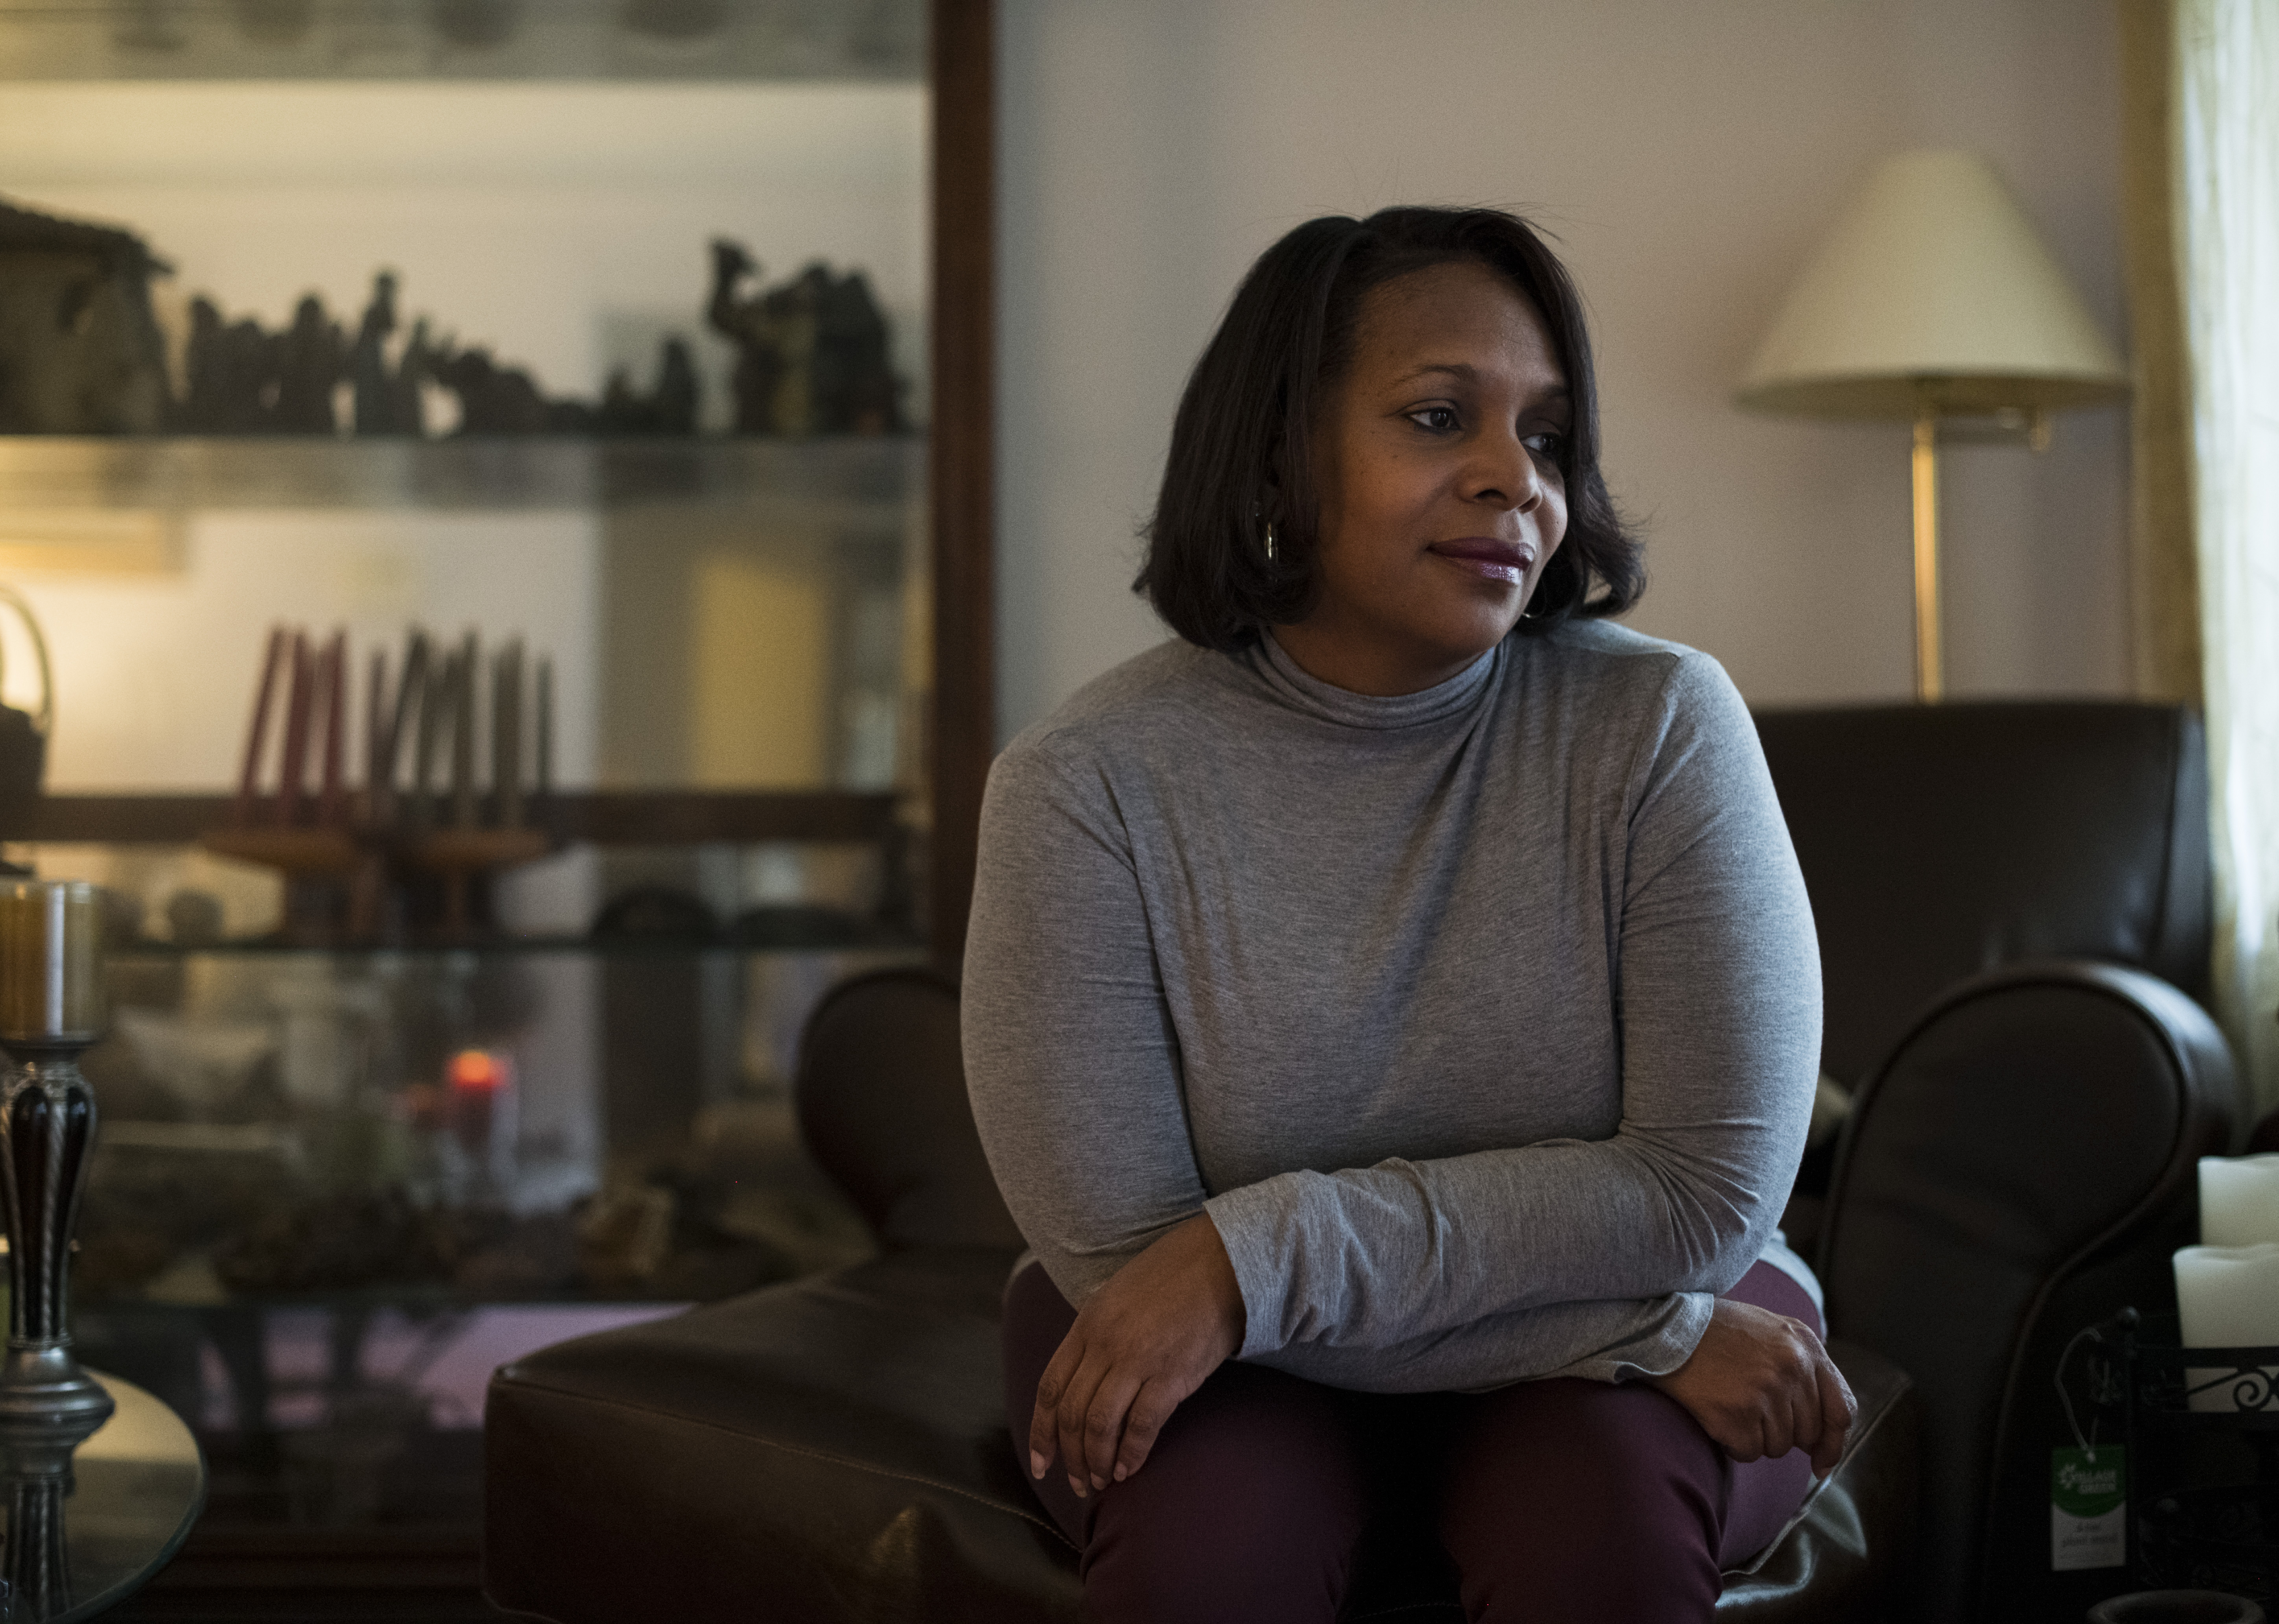 """Cheryl Monroe, a federal employee on furlough who also is a union official, said of the shutdown: """"This is not a time for us to lay down and take this."""" (Photo by Brittany Greeson/The Washington Post)"""